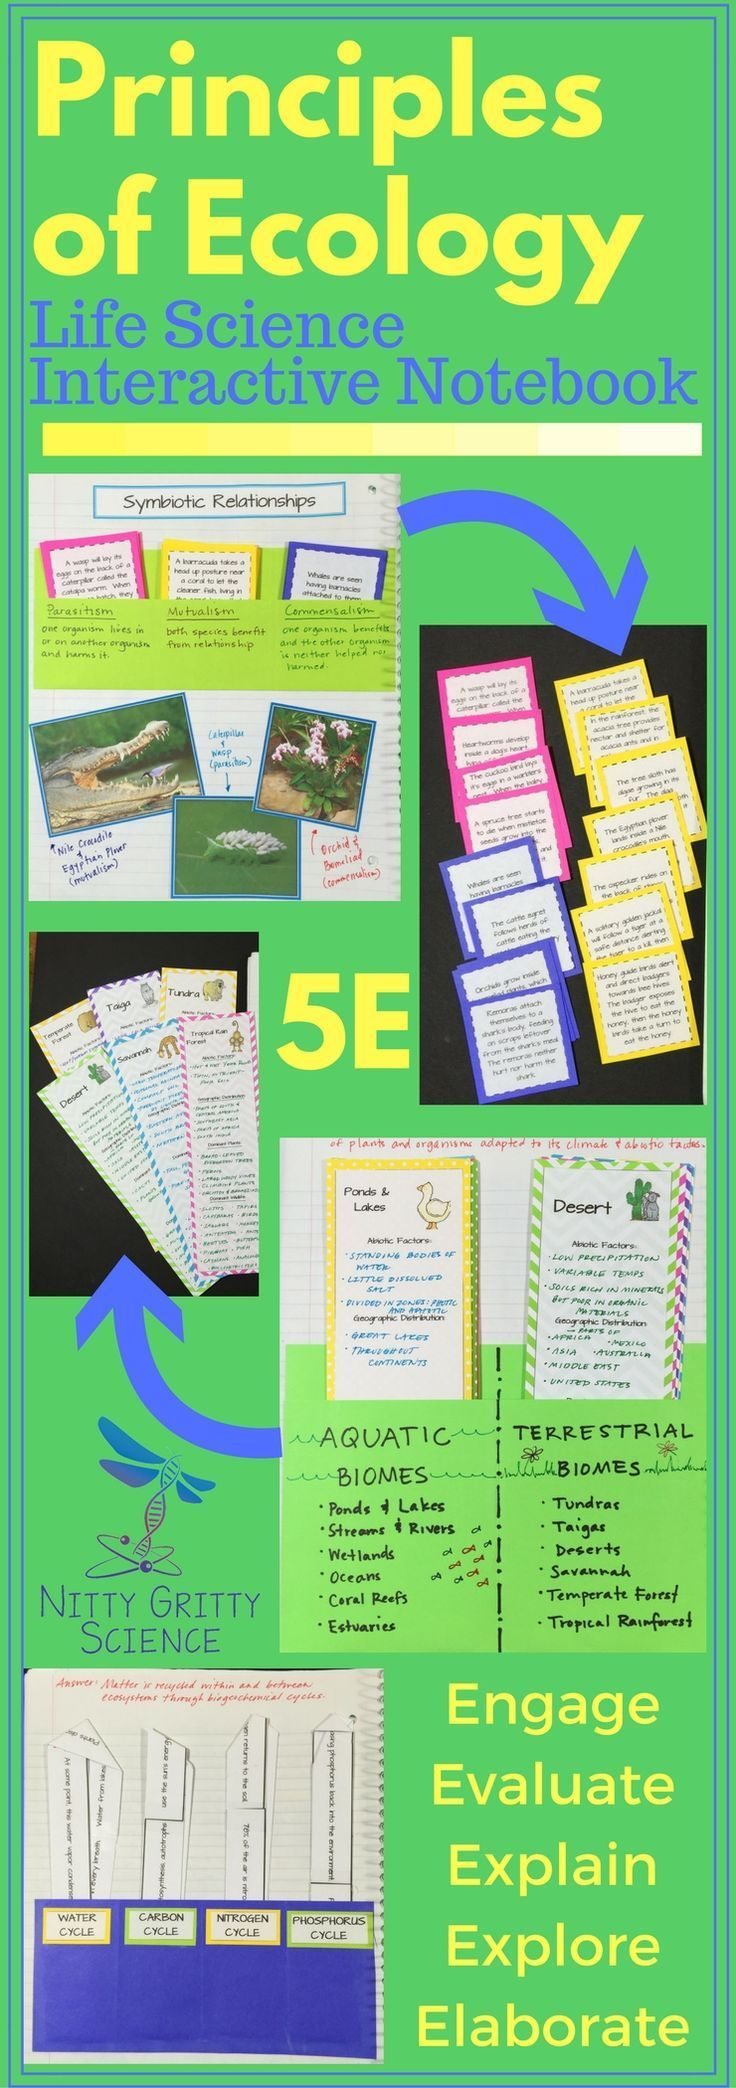 Principles of Ecology, Life Science Interactive Notebook include the following concepts: •Nutrition and Energy •Energy Flow in Ecosystems •Cycles in Nature •Organisms and Their Environment •Ecological Succession •Biomes Nitty Gritty Science